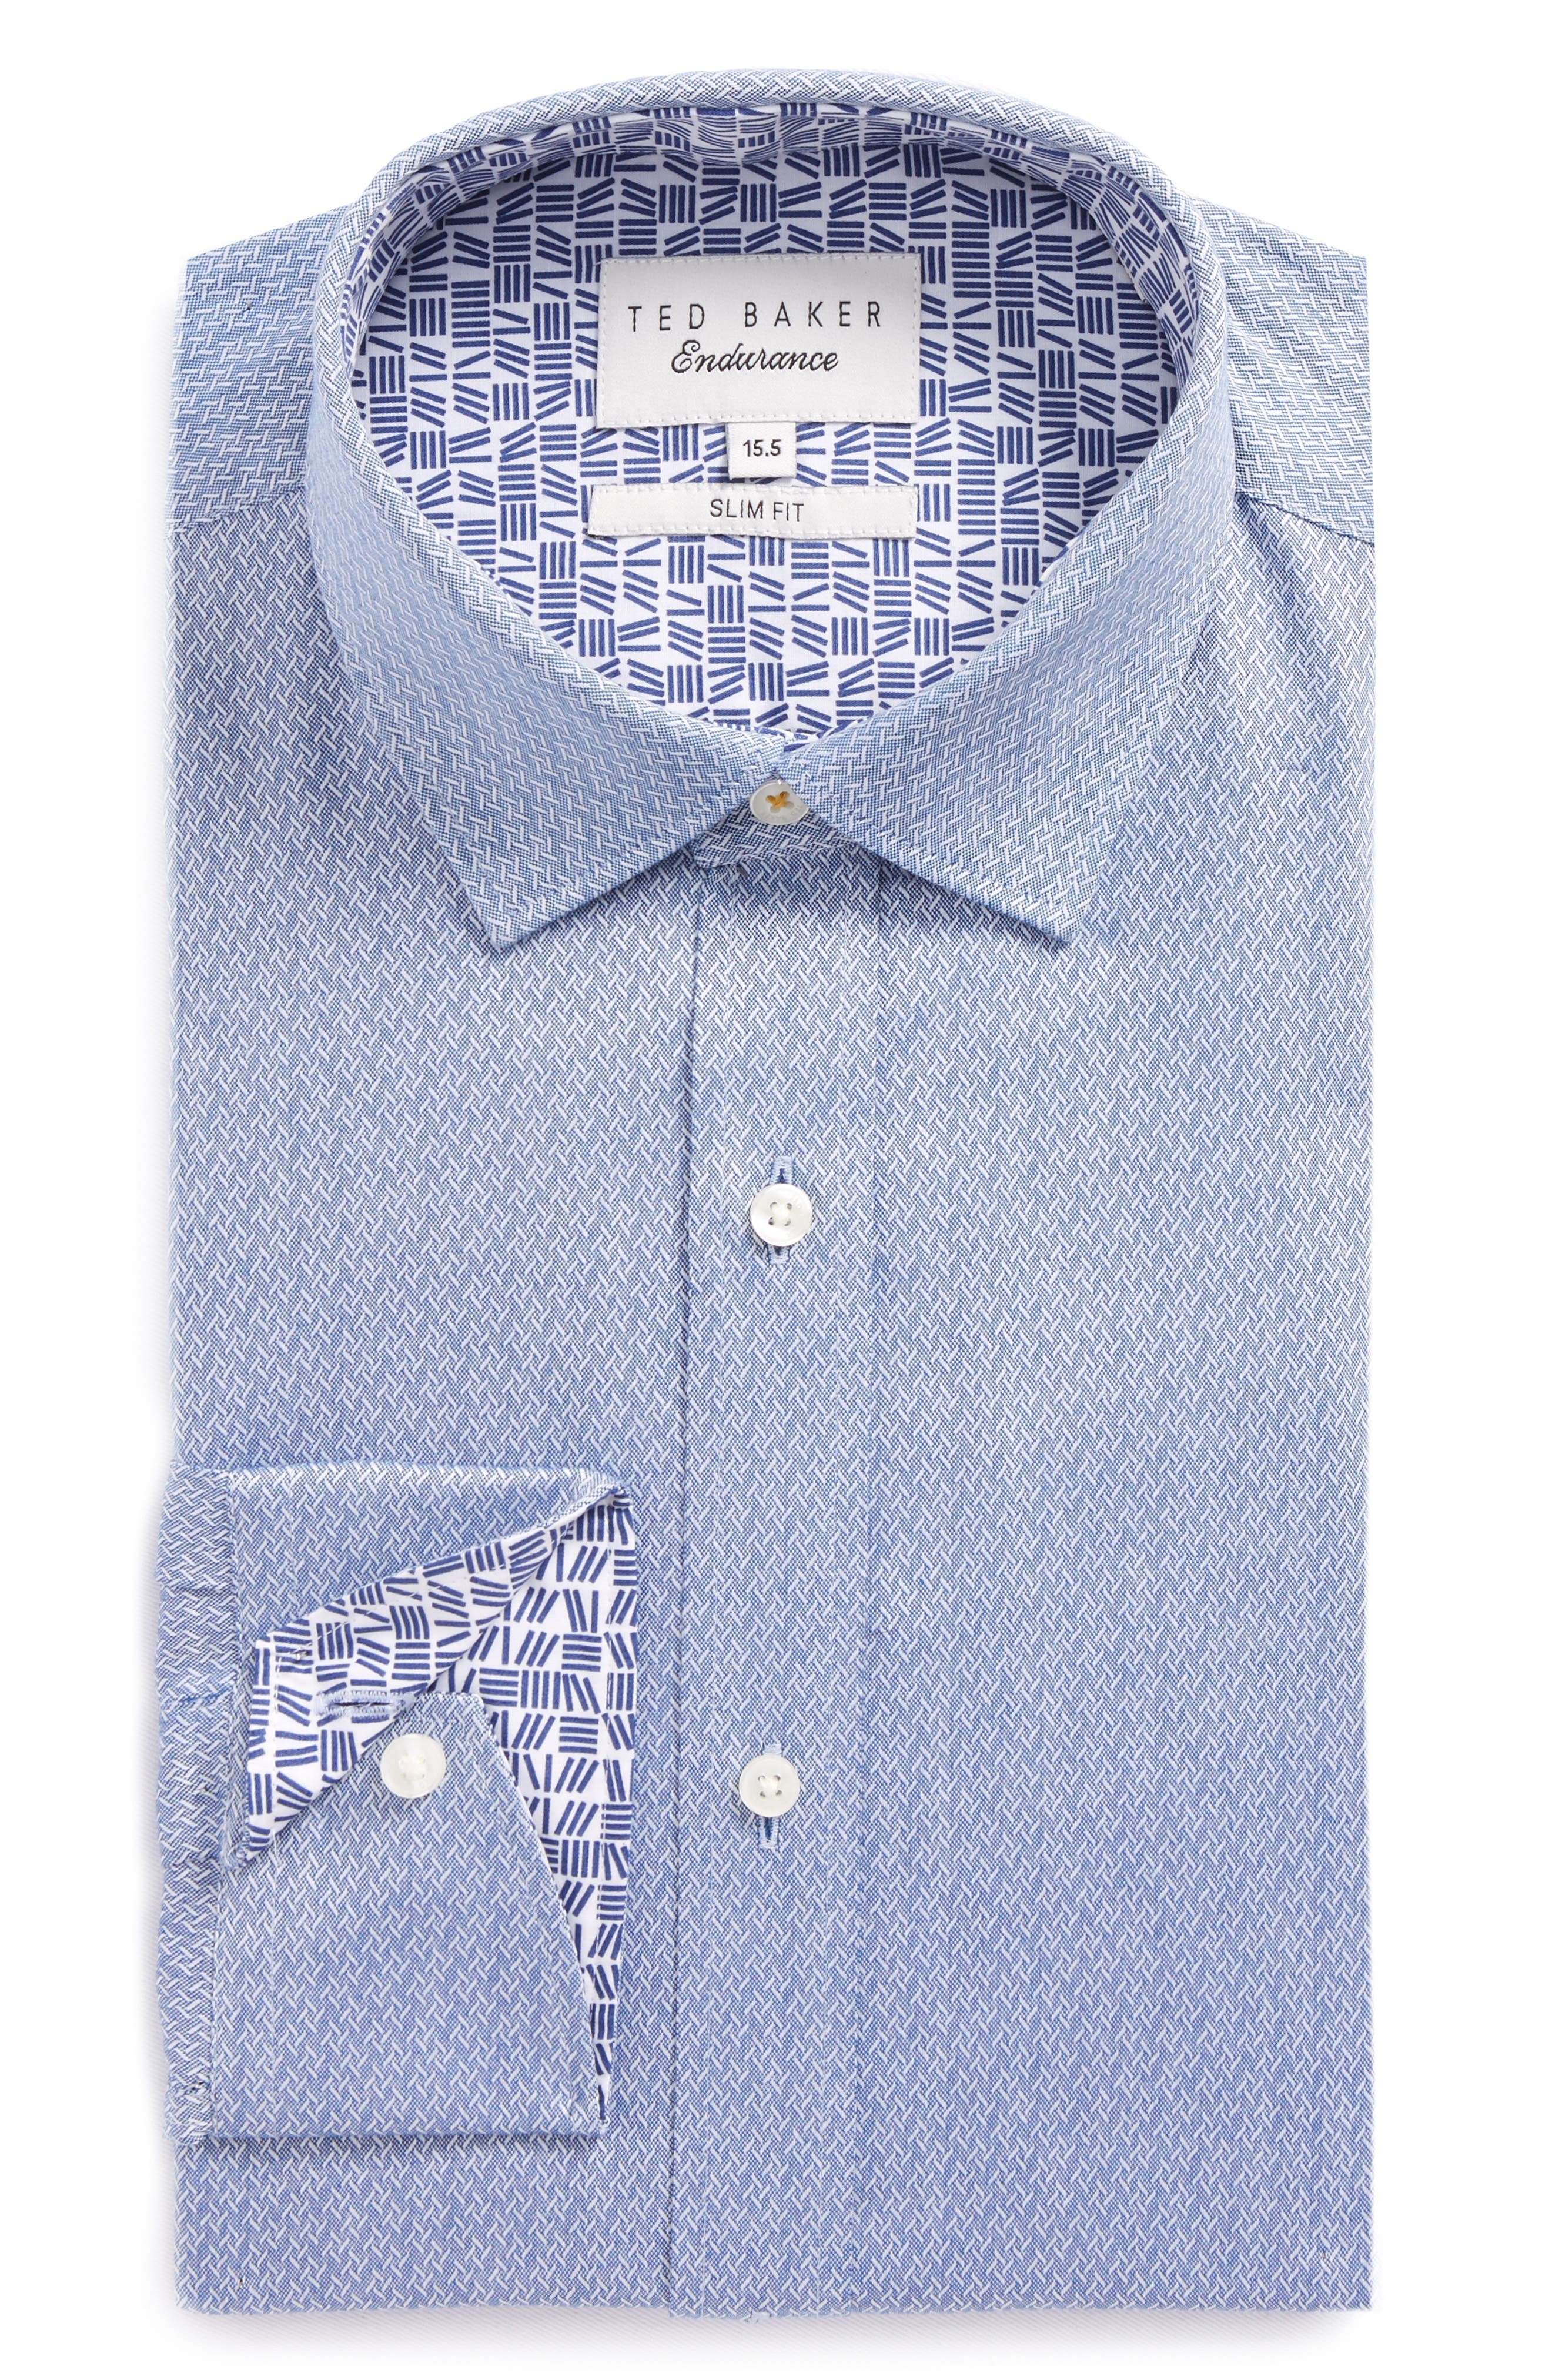 Endurance Driss Slim Fit Geometric Oxford Dress Shirt,                             Main thumbnail 1, color,                             NAVY